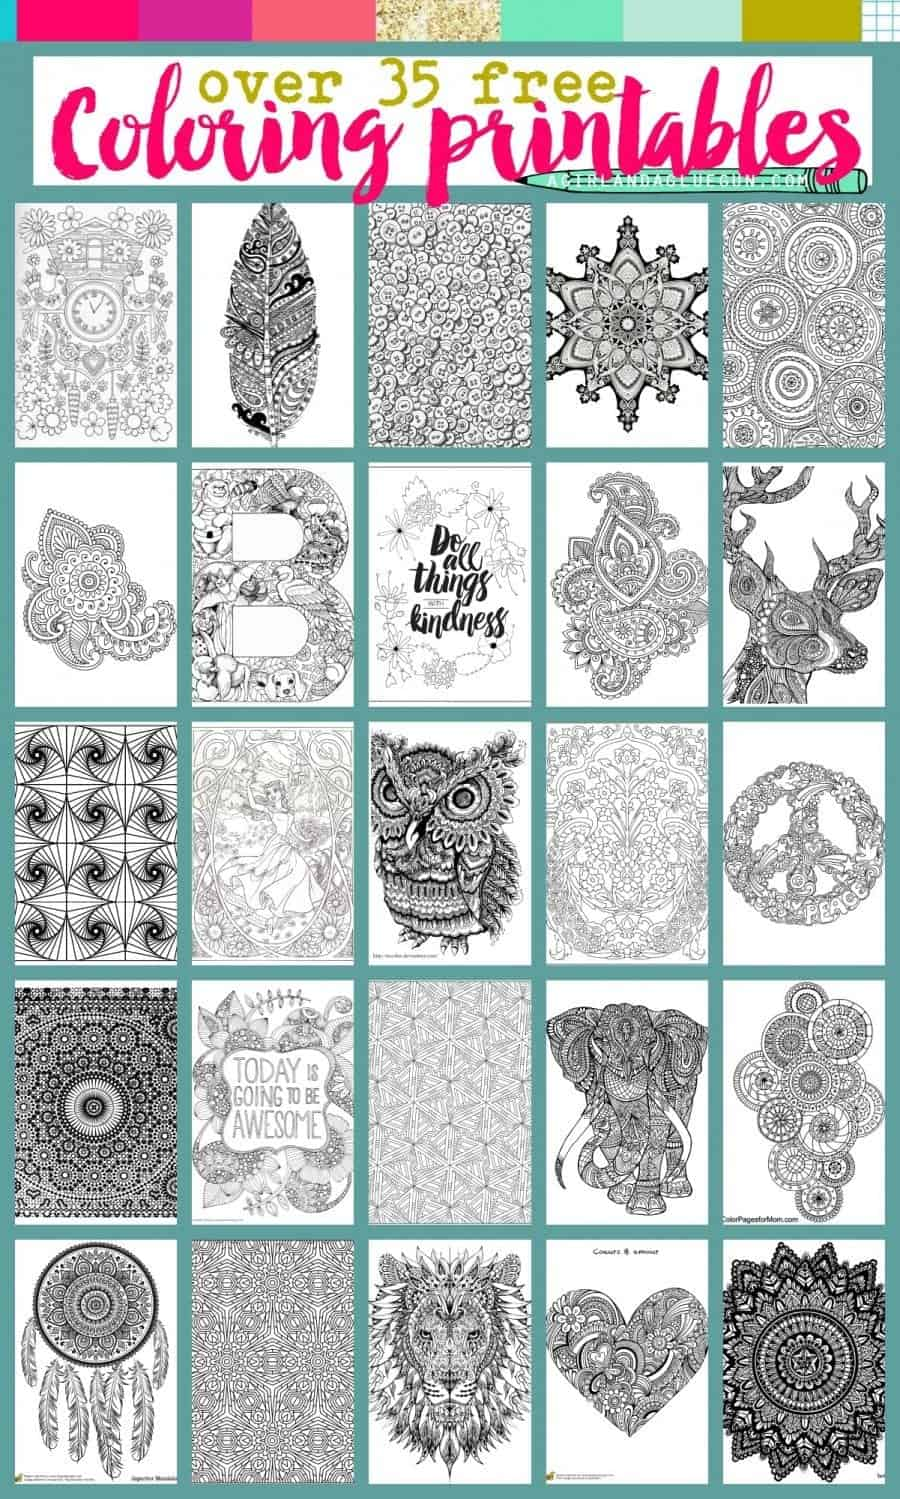 35-free-coloring-printables-for-adult-coloring-awesome-prints-and-pages-900x1499